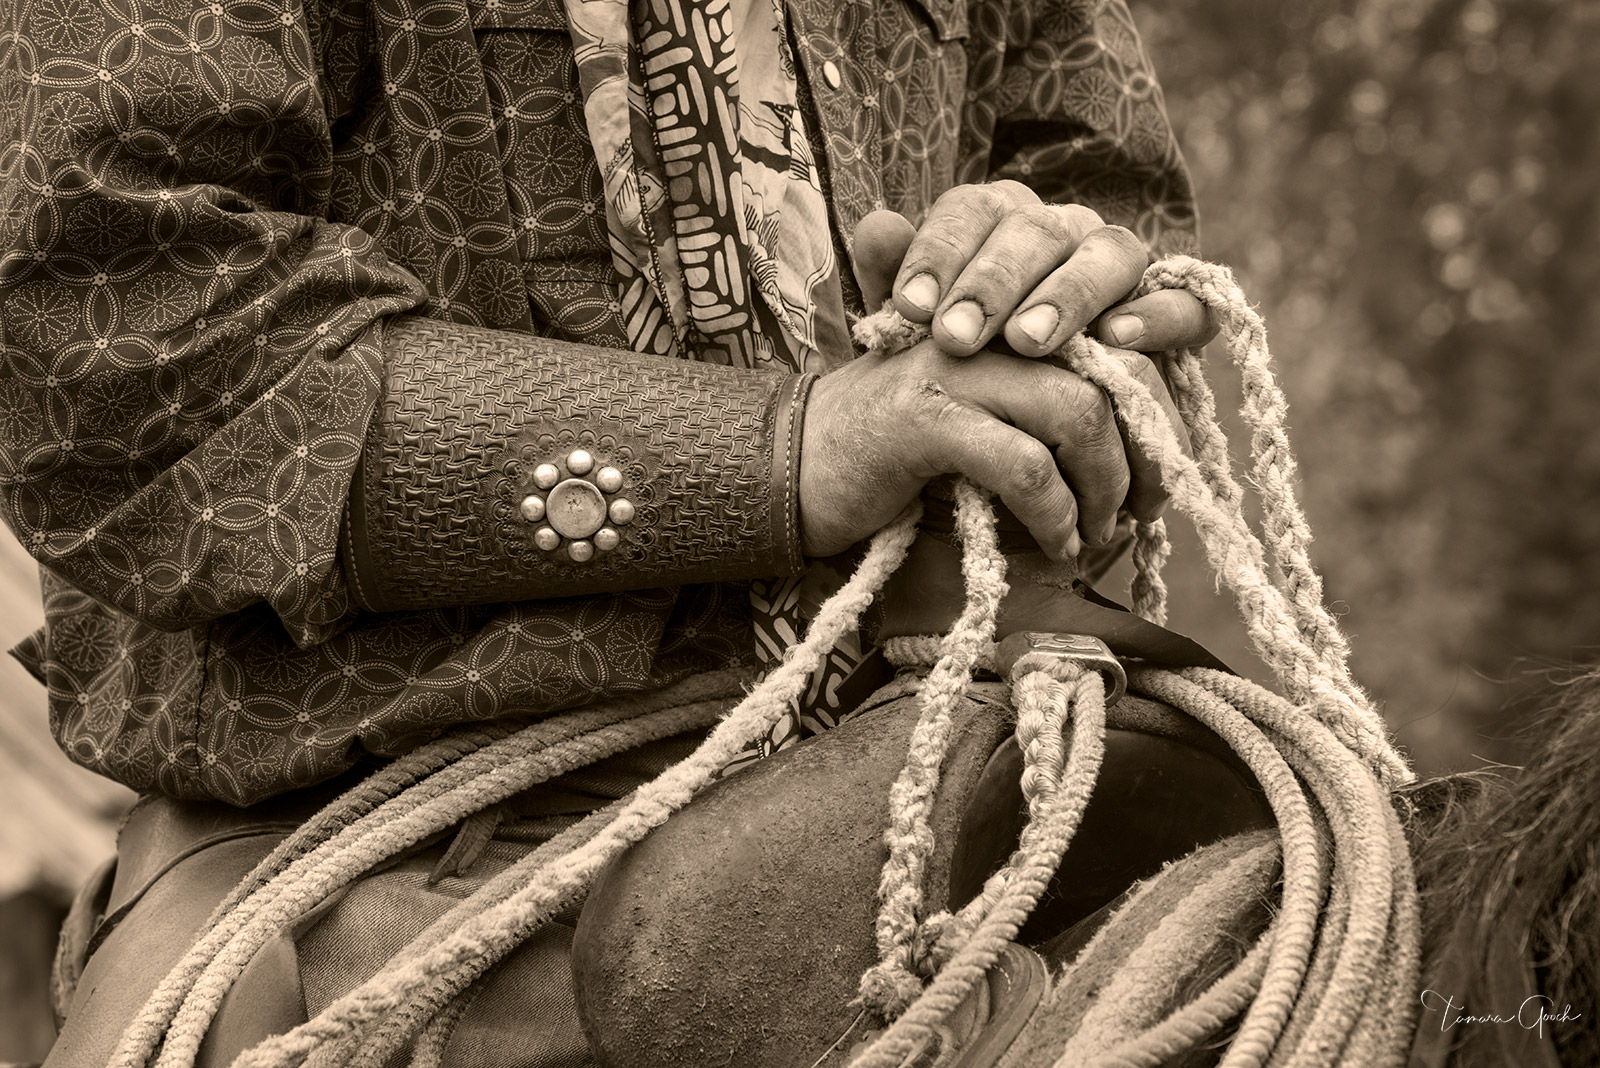 Cowboy Hardware is a limited edition print of 50 A sepia toned photograph of a cowboys hands, cuffs, rope and saddle is a perfect...